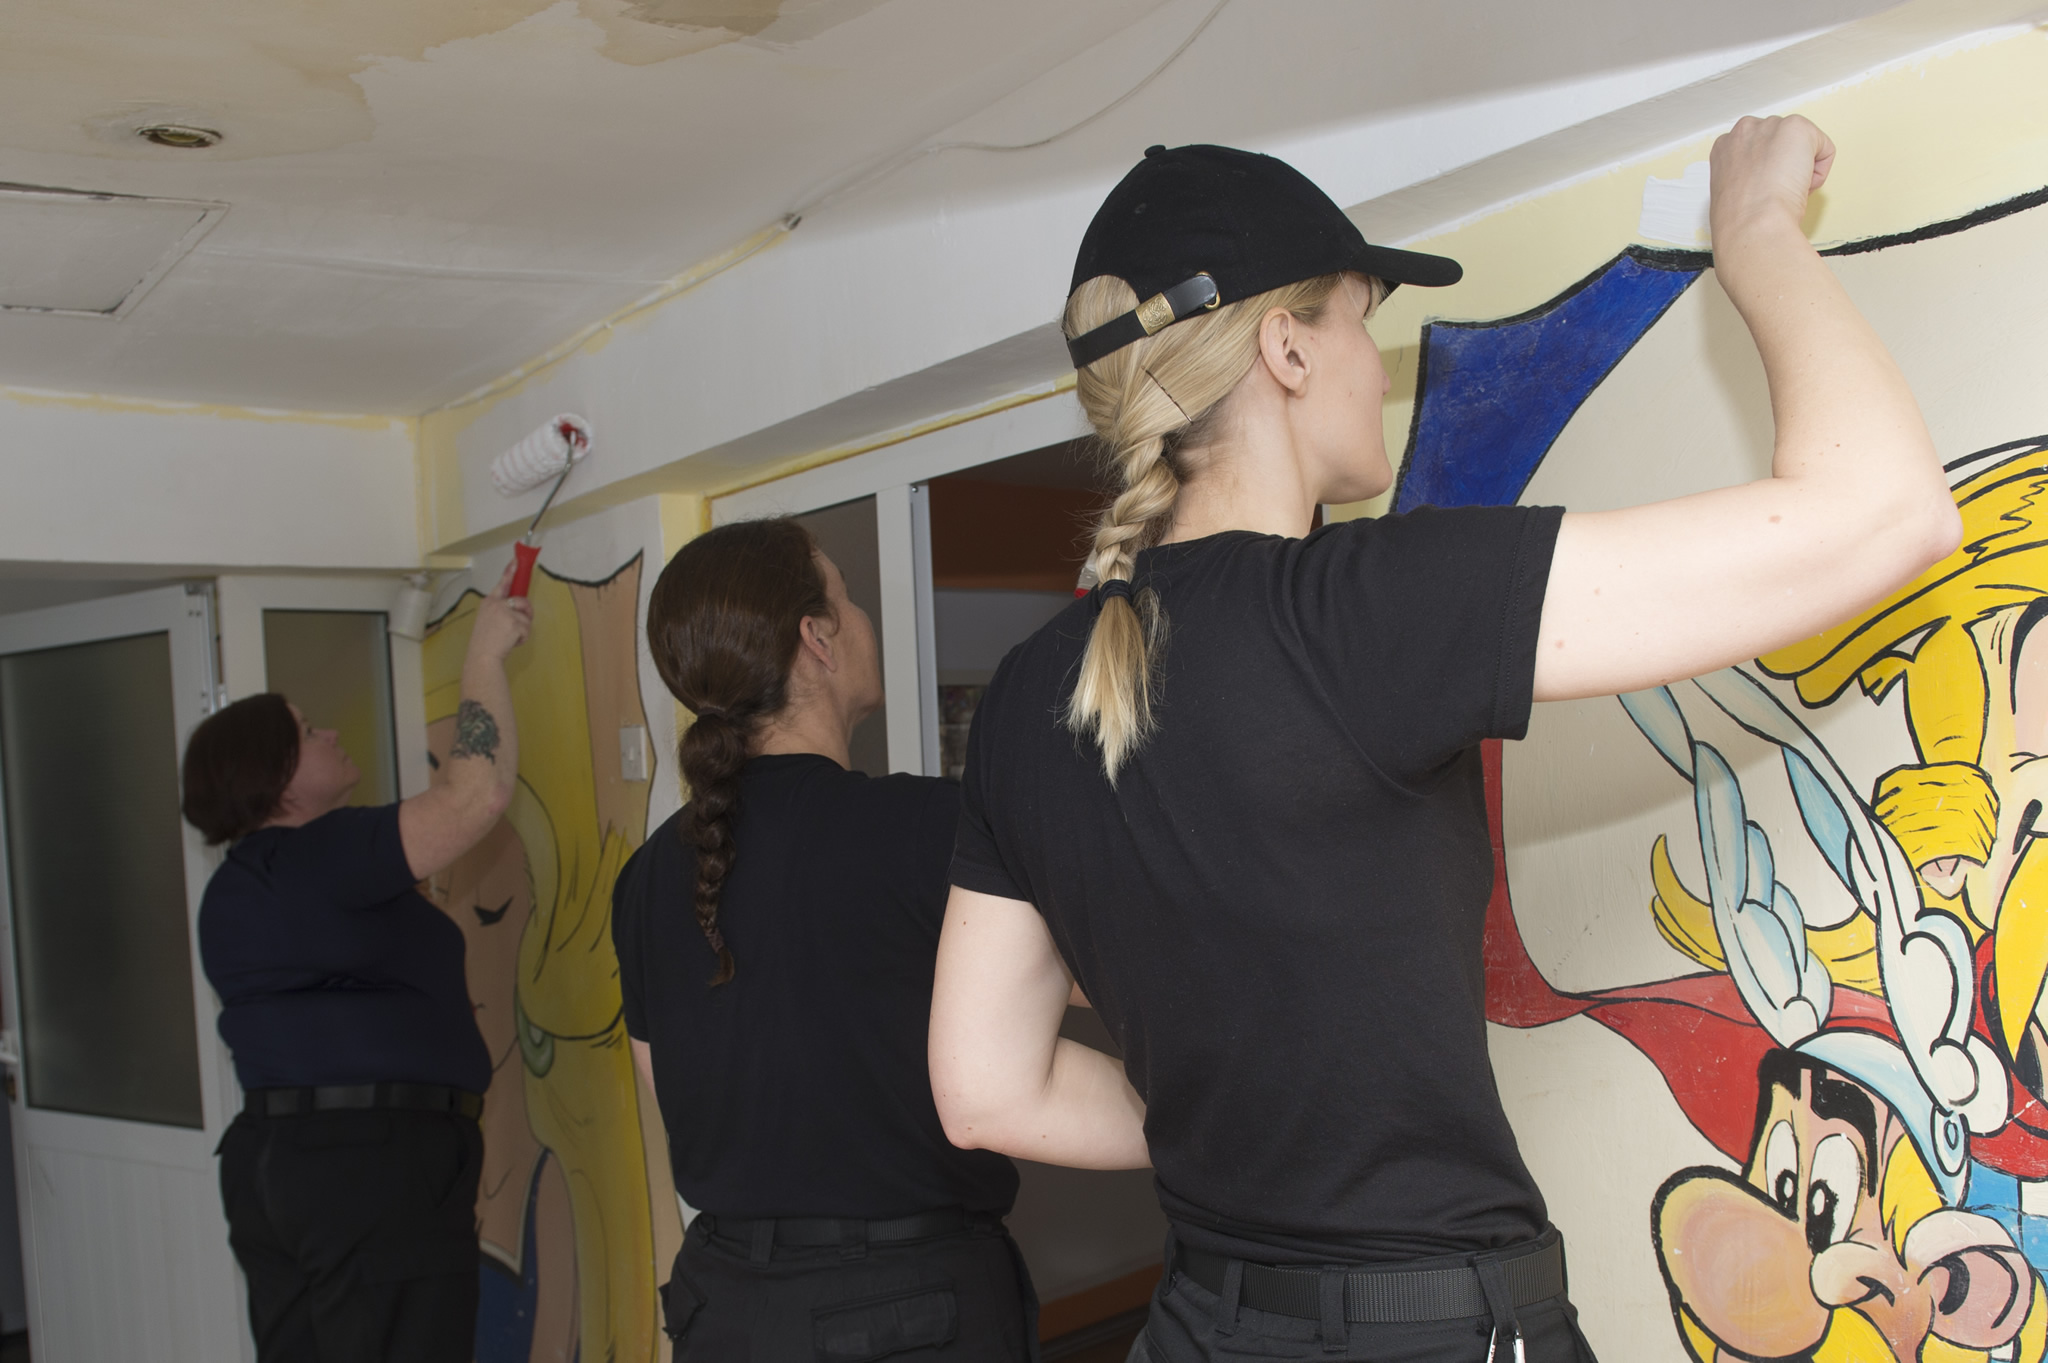 Female members of HMCS St. John's lend a hand in painting at the Nightingales Children's Project in Cernavoda during the ship's visit to Constanta, Romania, on February 5, 2017, during Operation REASSURANCE.